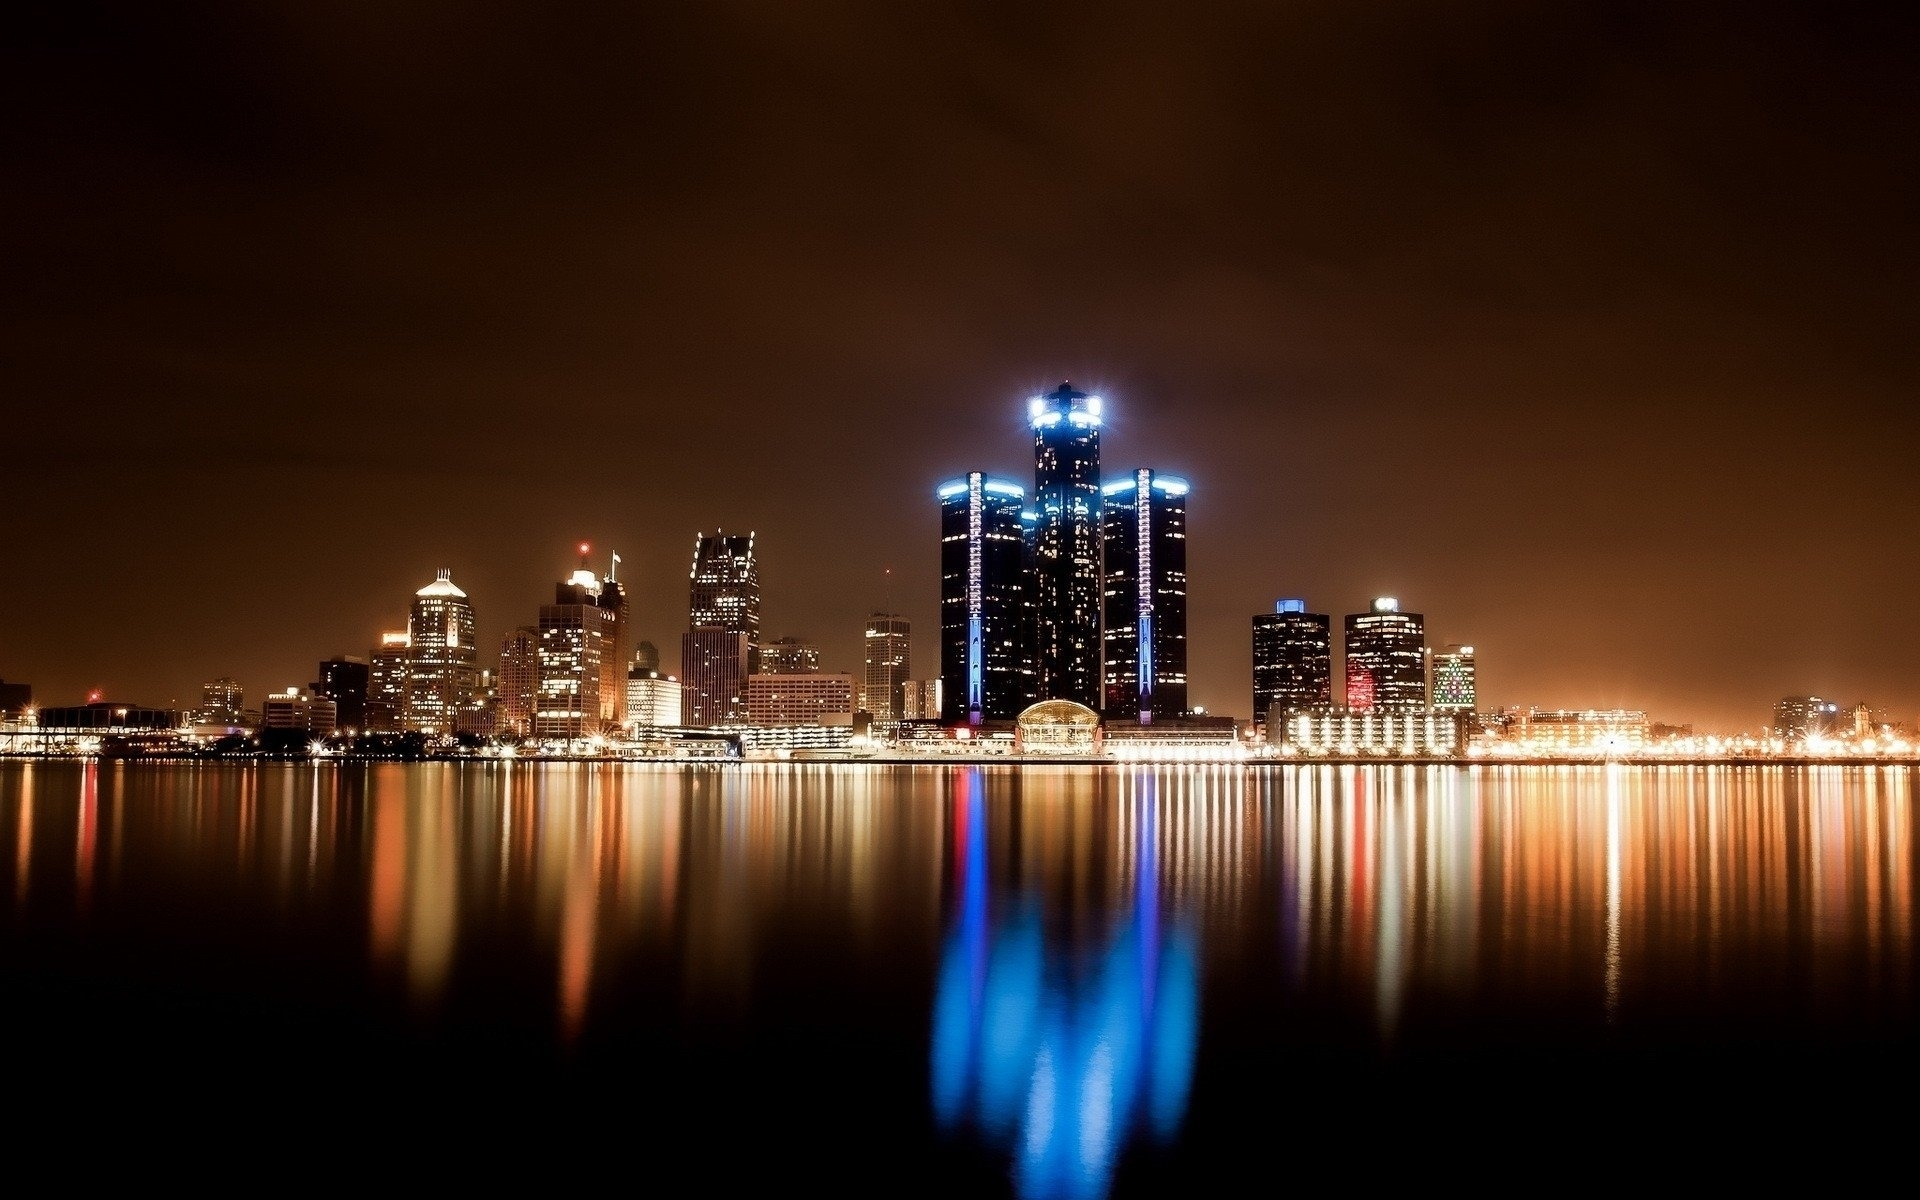 7 detroit hd wallpapers | background images - wallpaper abyss